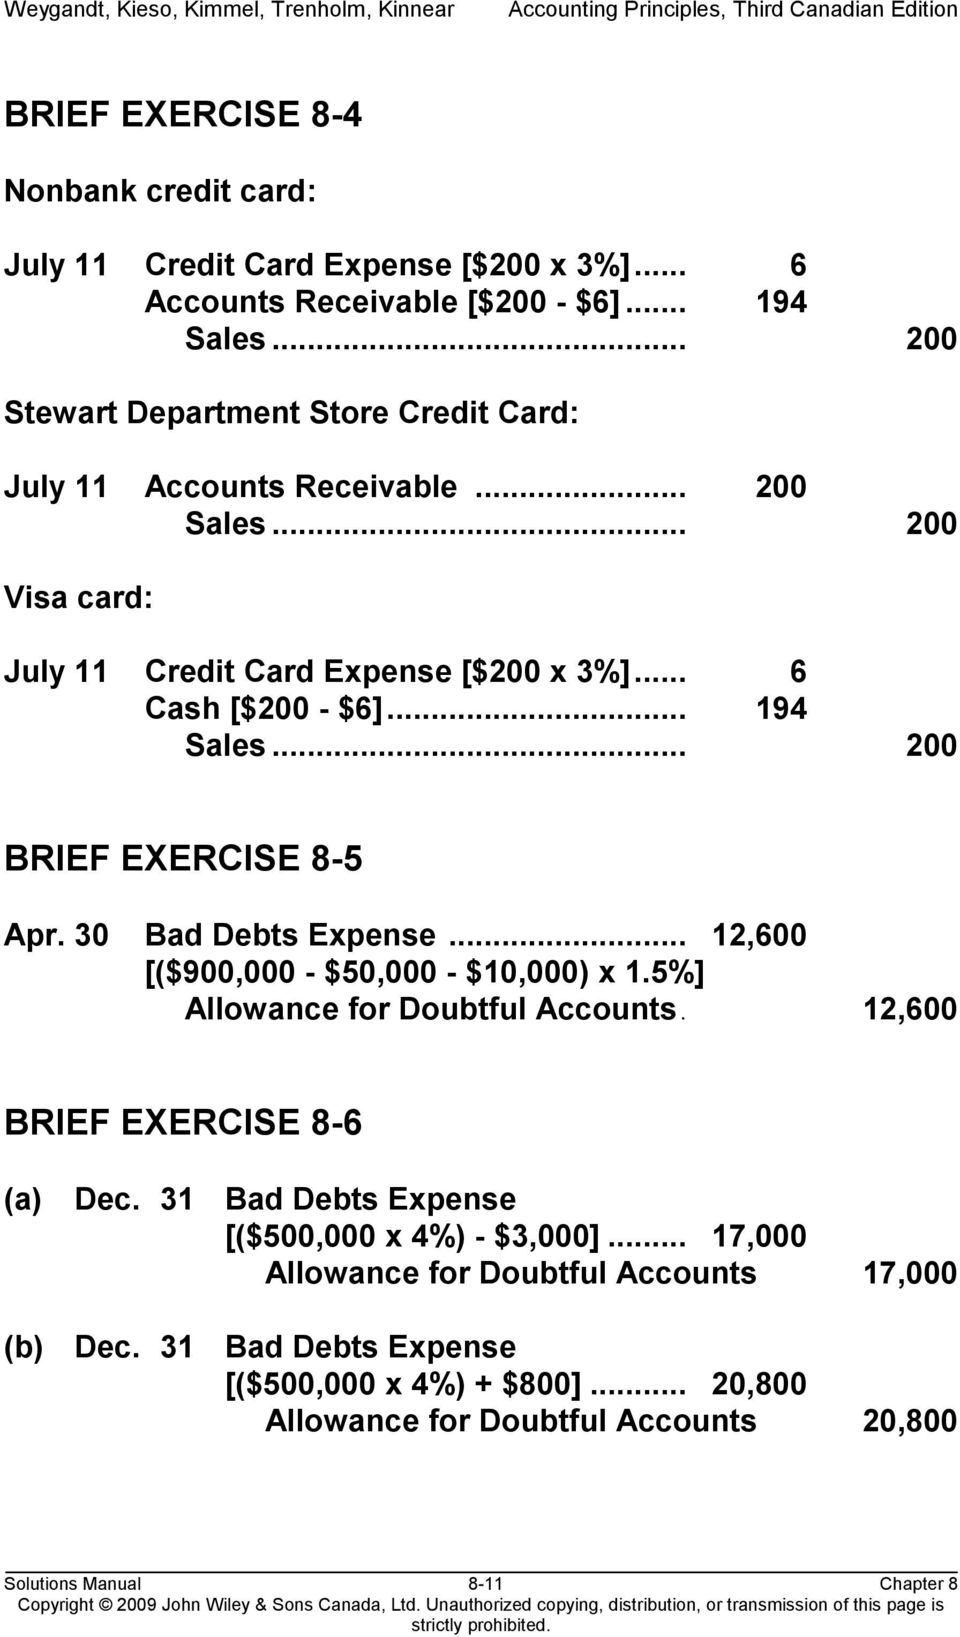 .. 200 BRIEF EXERCISE 8-5 Apr. 30 Bad Debts Expense... 12,600 [($900,000 - $50,000 - $10,000) x 1.5%] Allowance for Doubtful Accounts. 12,600 BRIEF EXERCISE 8-6 (a) Dec.